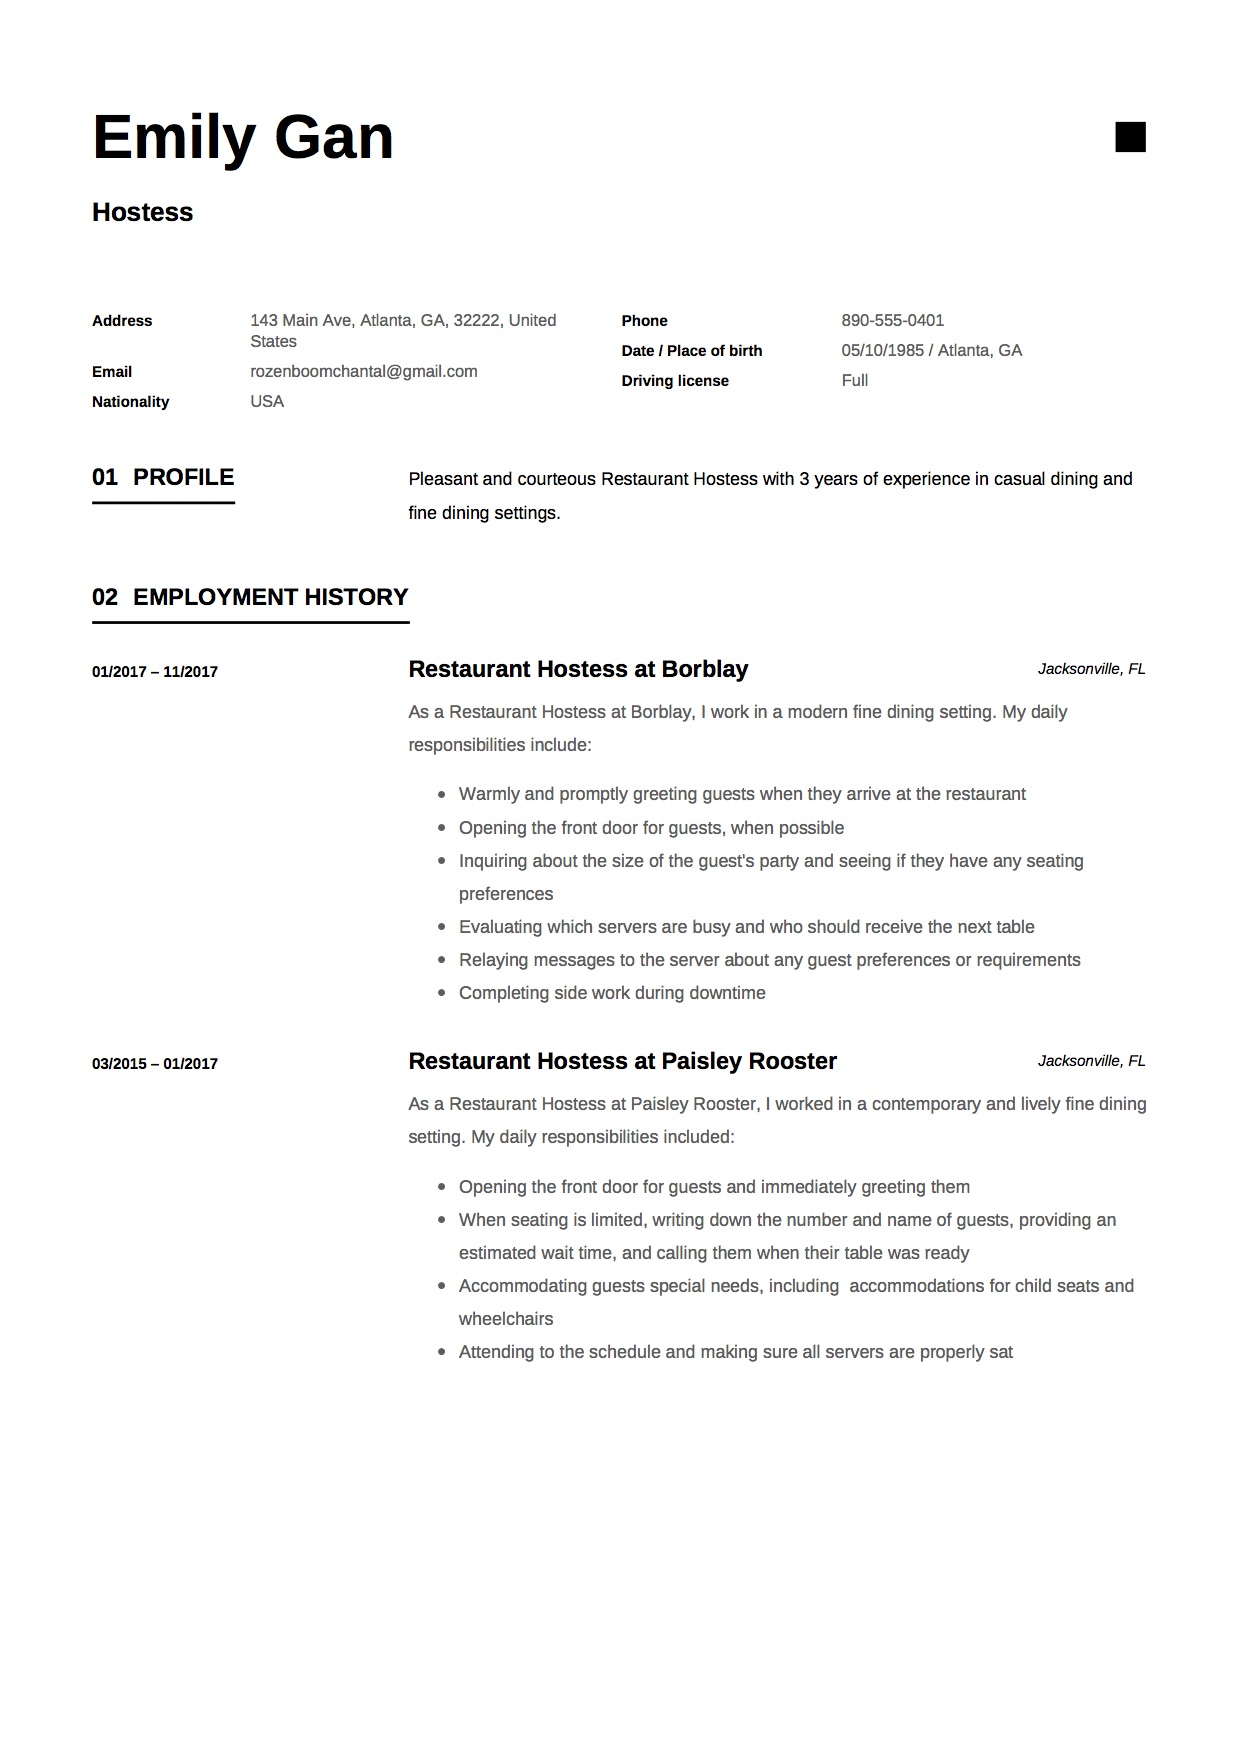 hostess resume guide examples free downloads emily gan template entry level lab assistant Resume Hostess Resume Examples